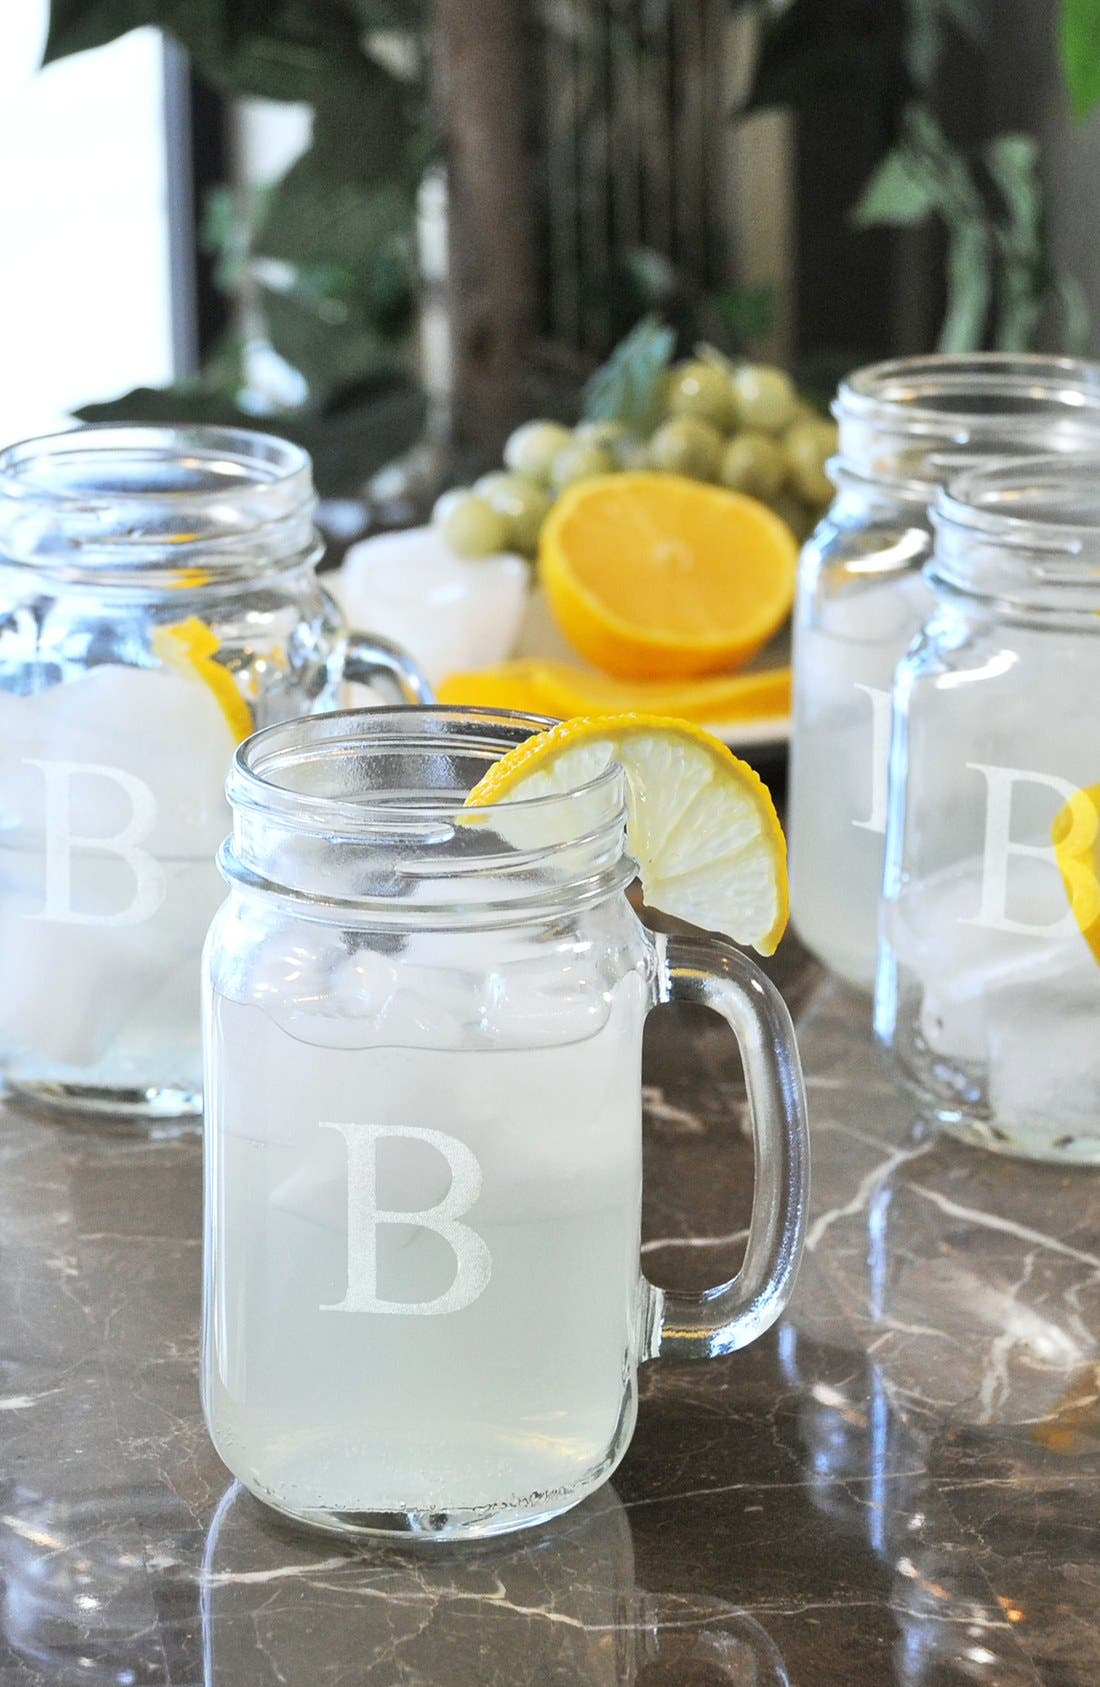 Alternate Image 1 Selected - Cathy's Concepts Monogram Glass Drinking Jars (Set of 4)